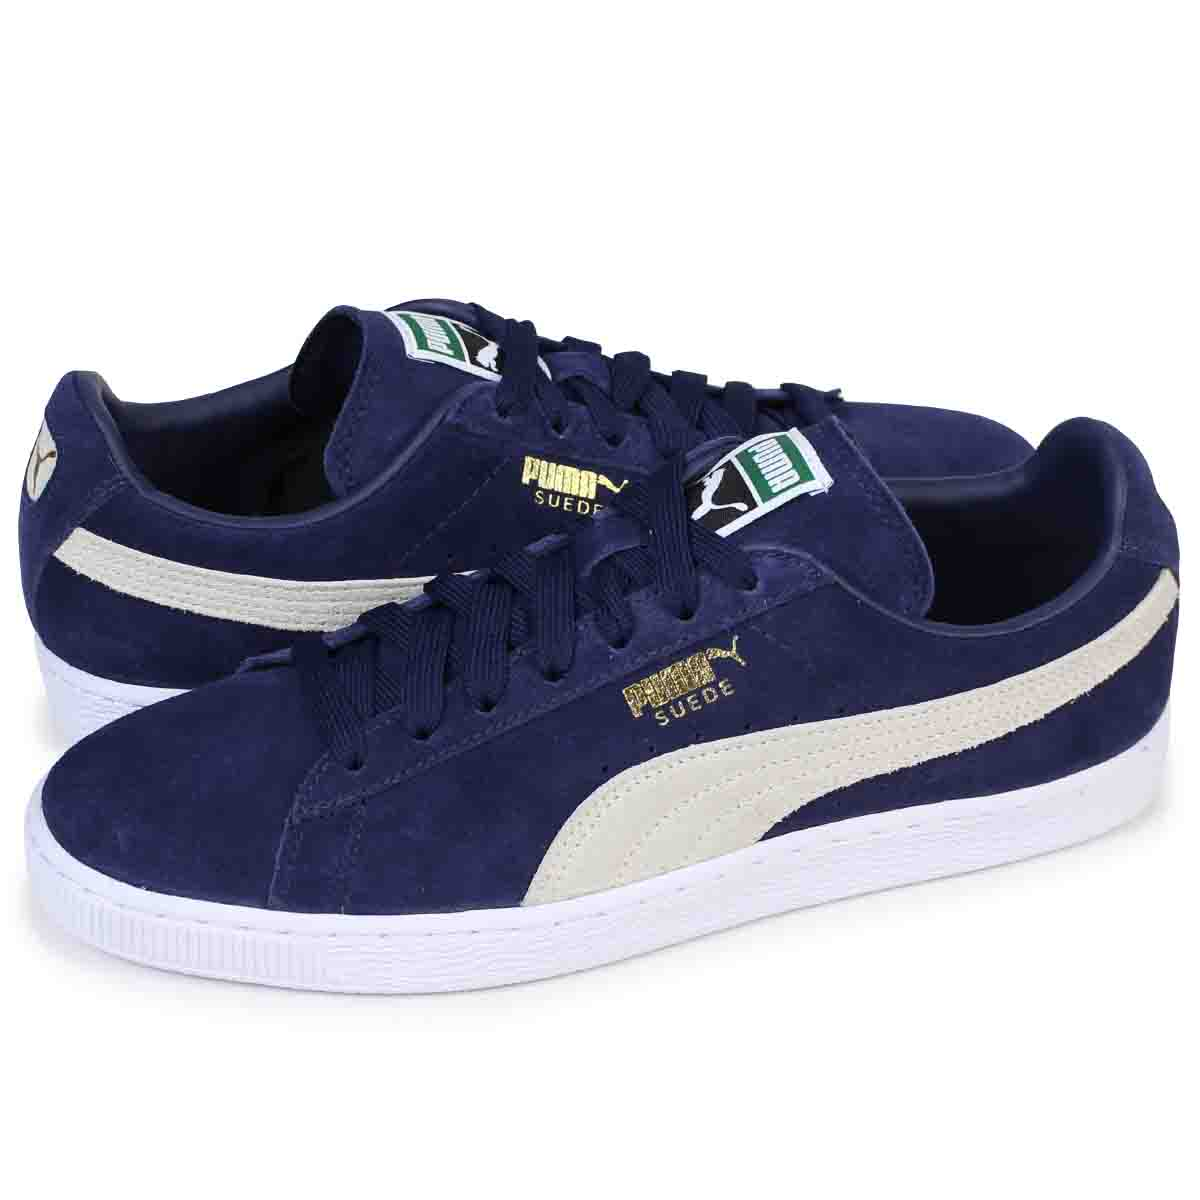 PUMA Puma suede classical music sneakers SUEDE CLASSIC + 356,568 51 men's shoes navy